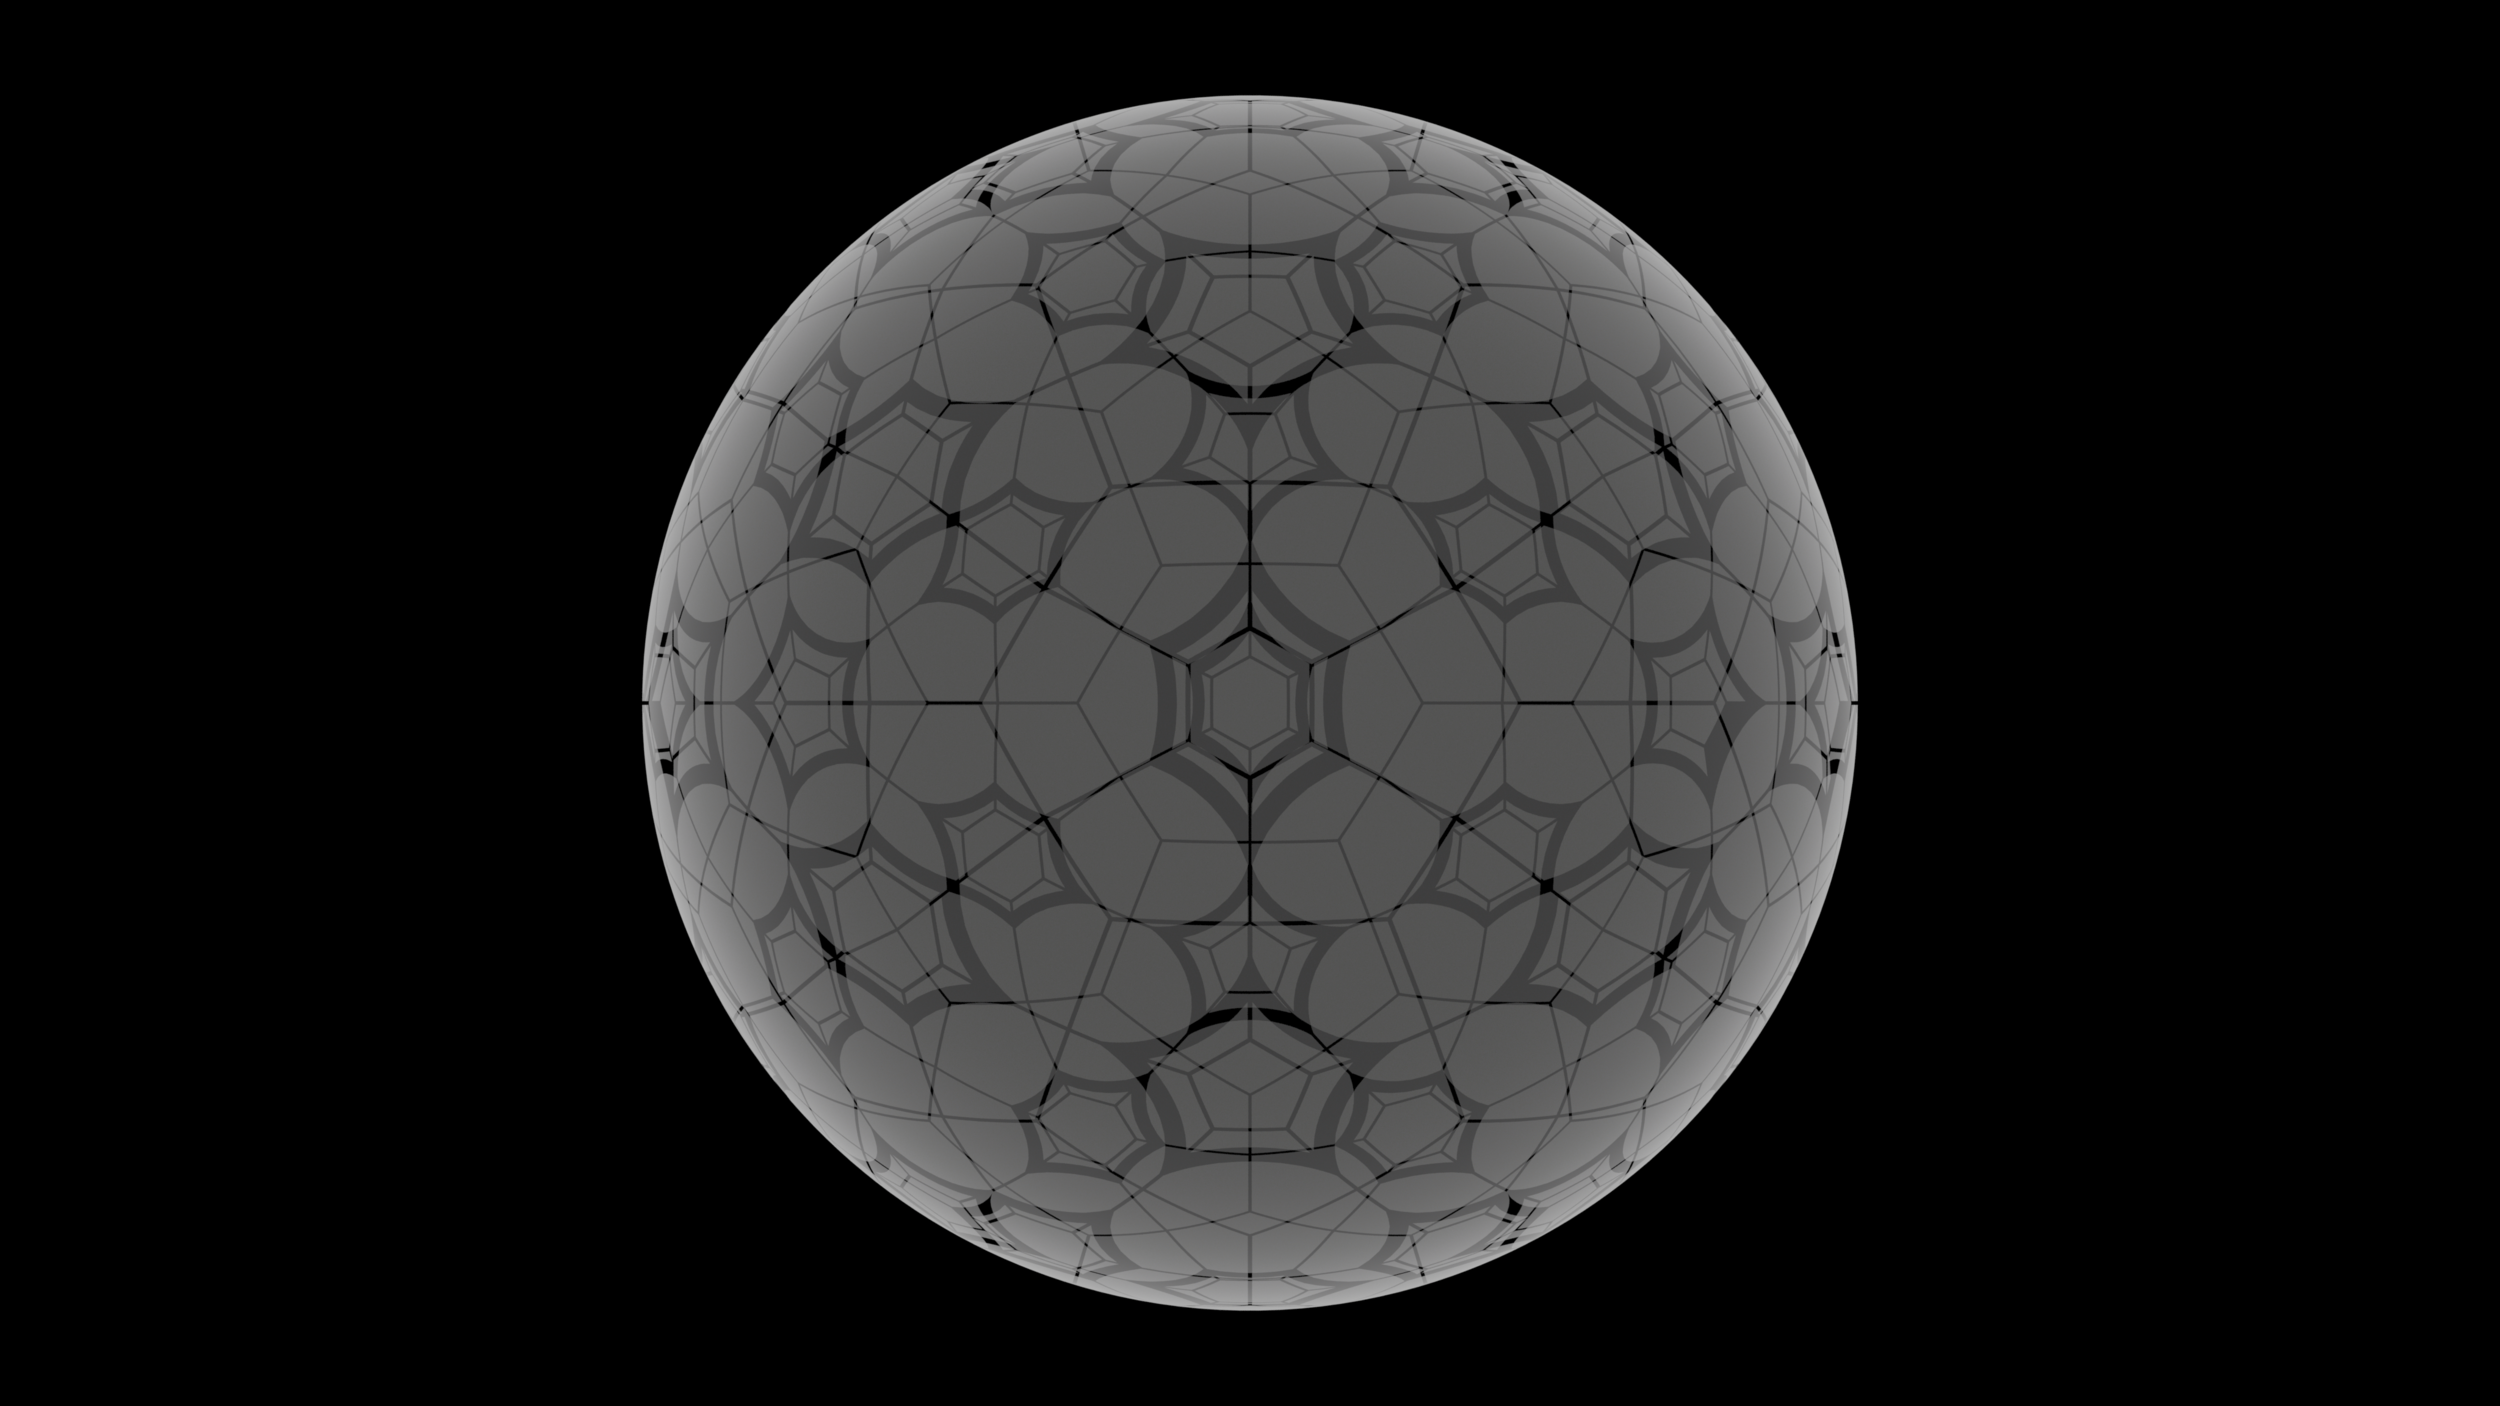 hex sphere fracture 07.png